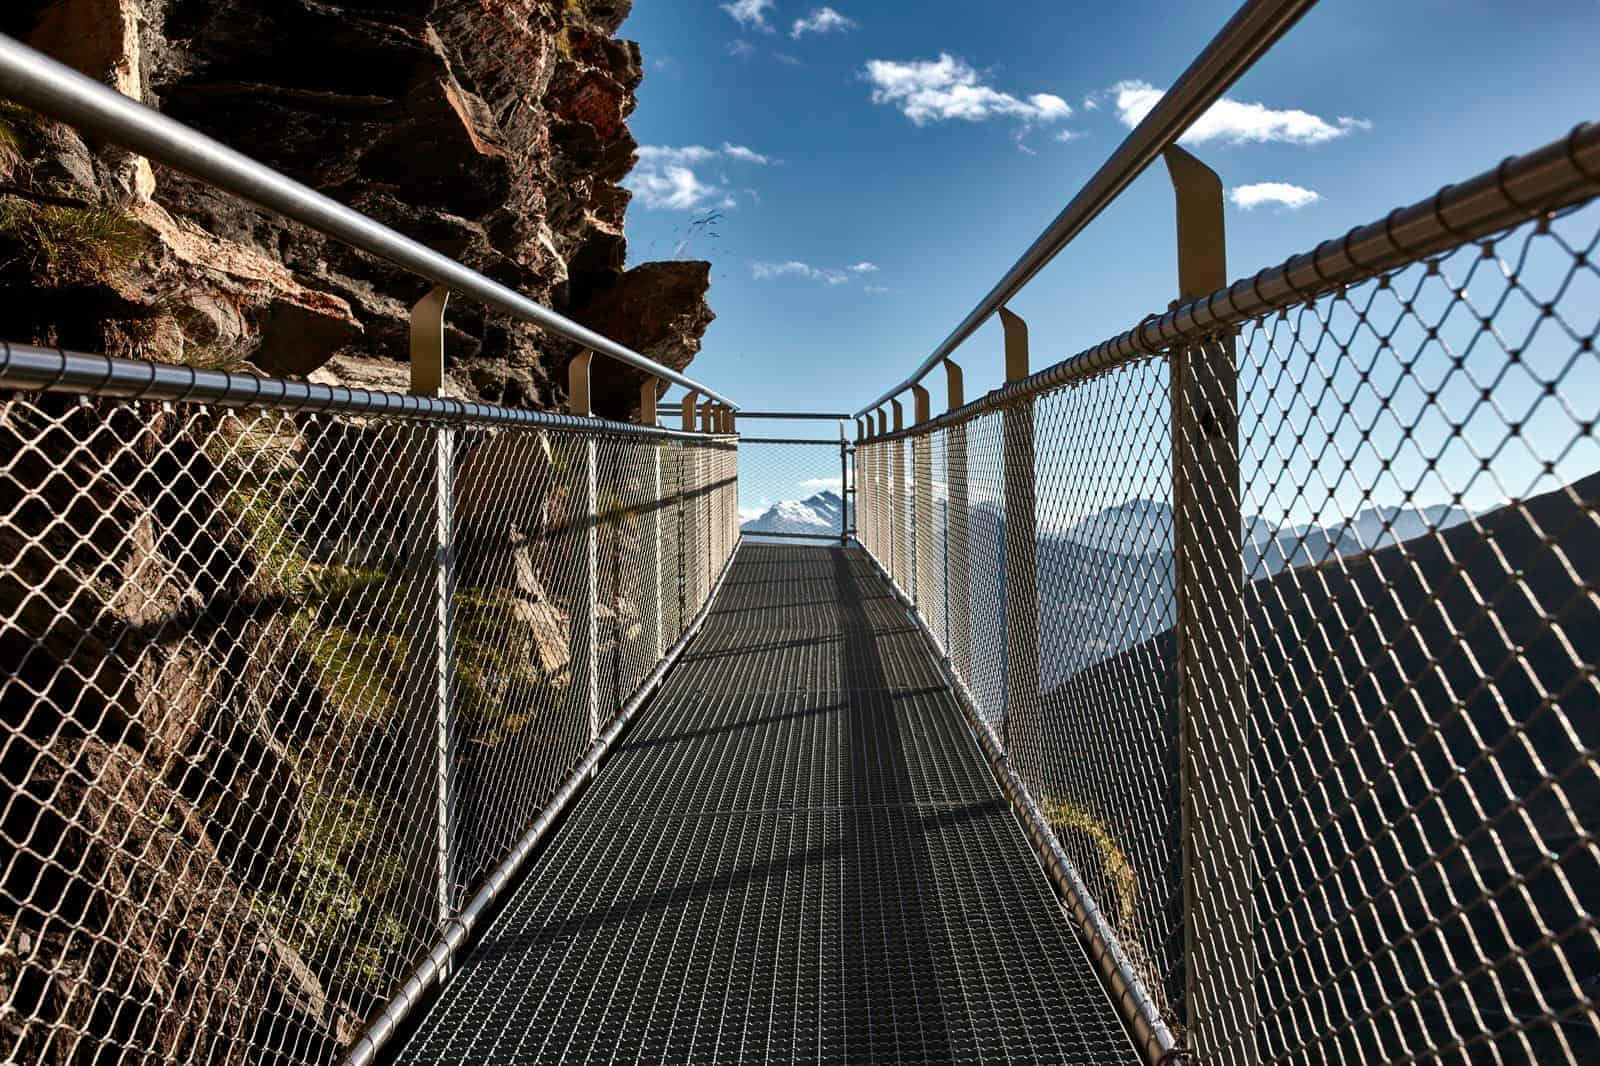 jakob-rope-systems-reference-railing-infill-webnet-switzerland-grindelwald-first-cliff-walk-09